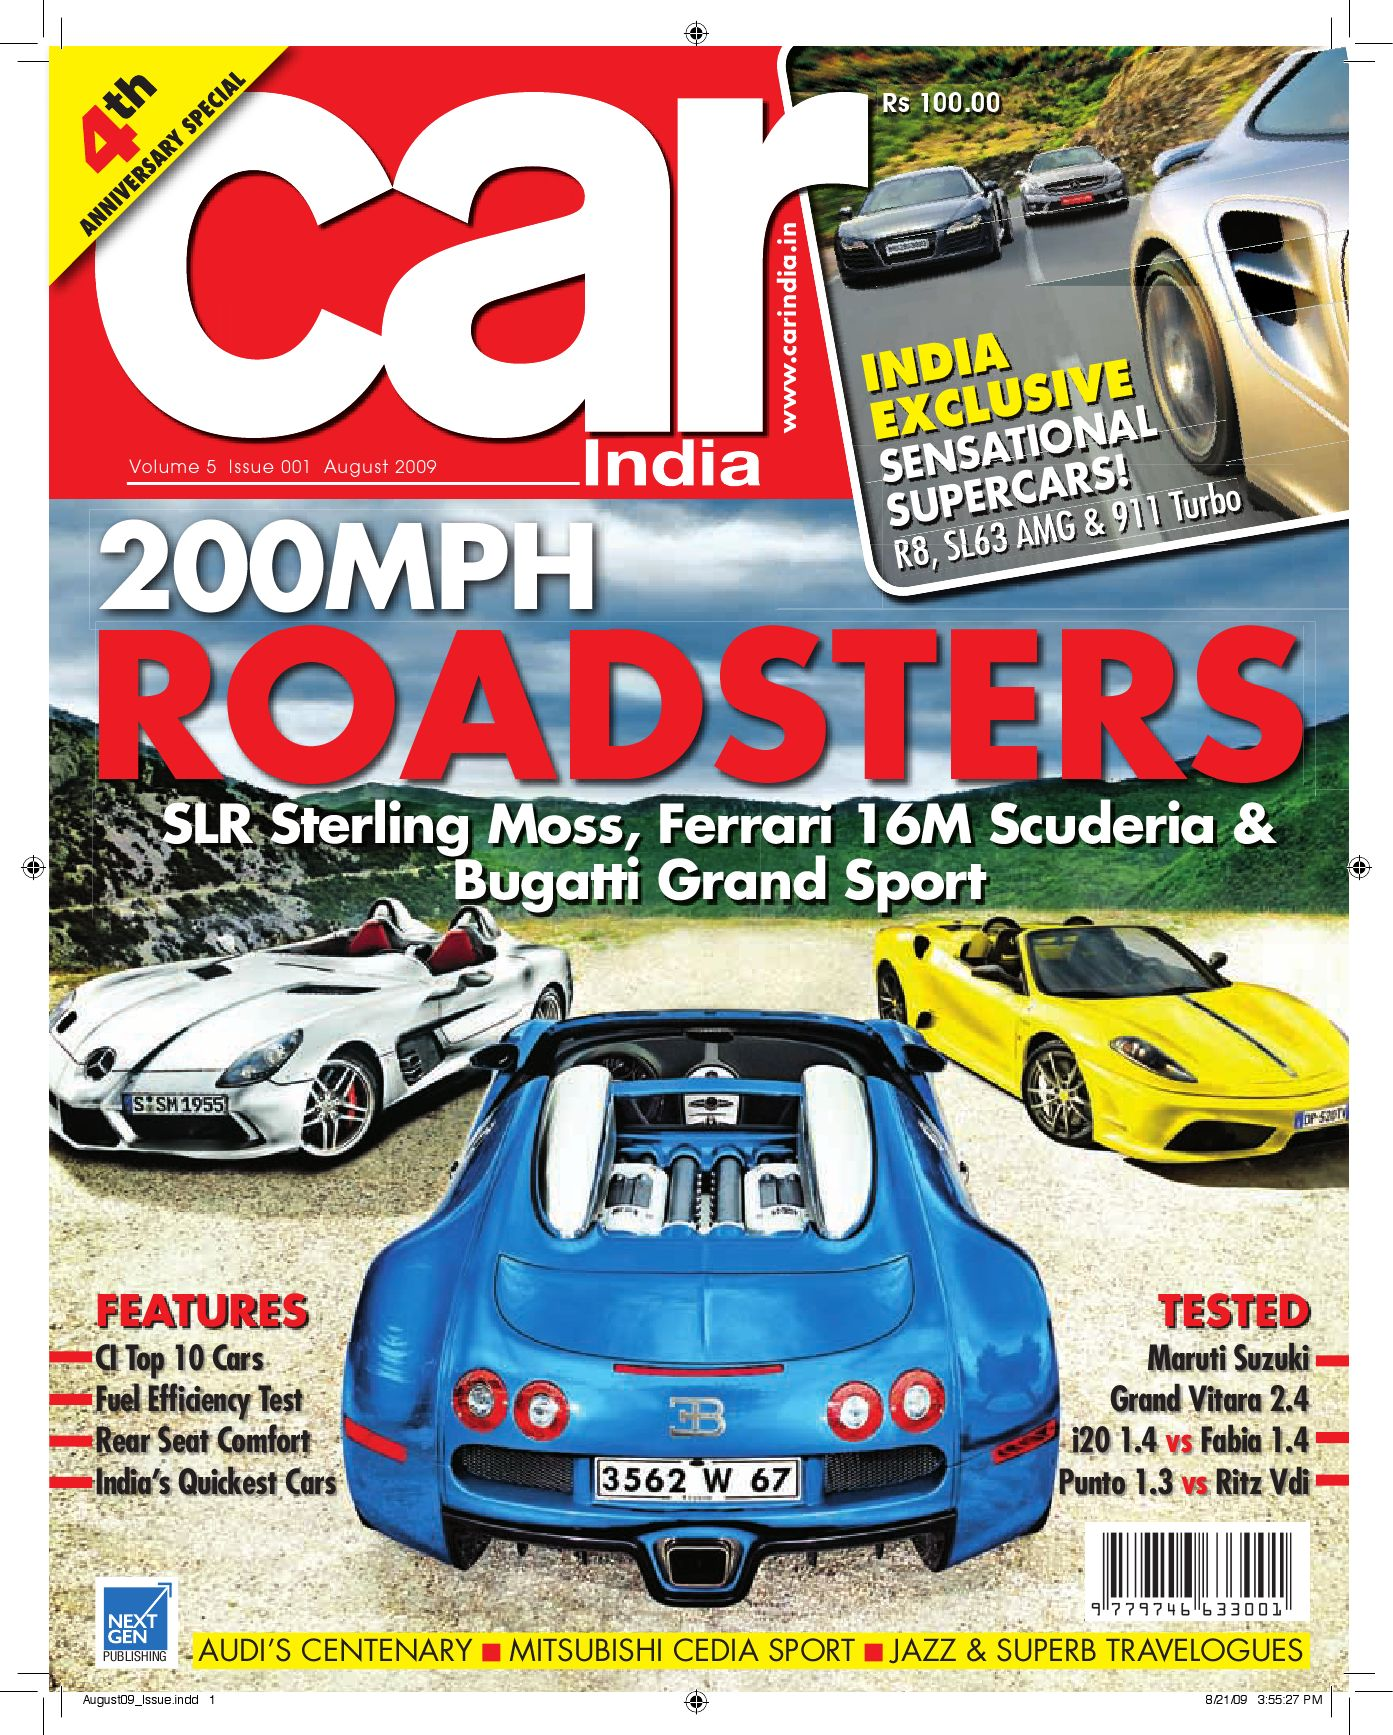 Car India Aug 2009 By Next Gen Publishing Ltd Issuu Refill Msl Brm